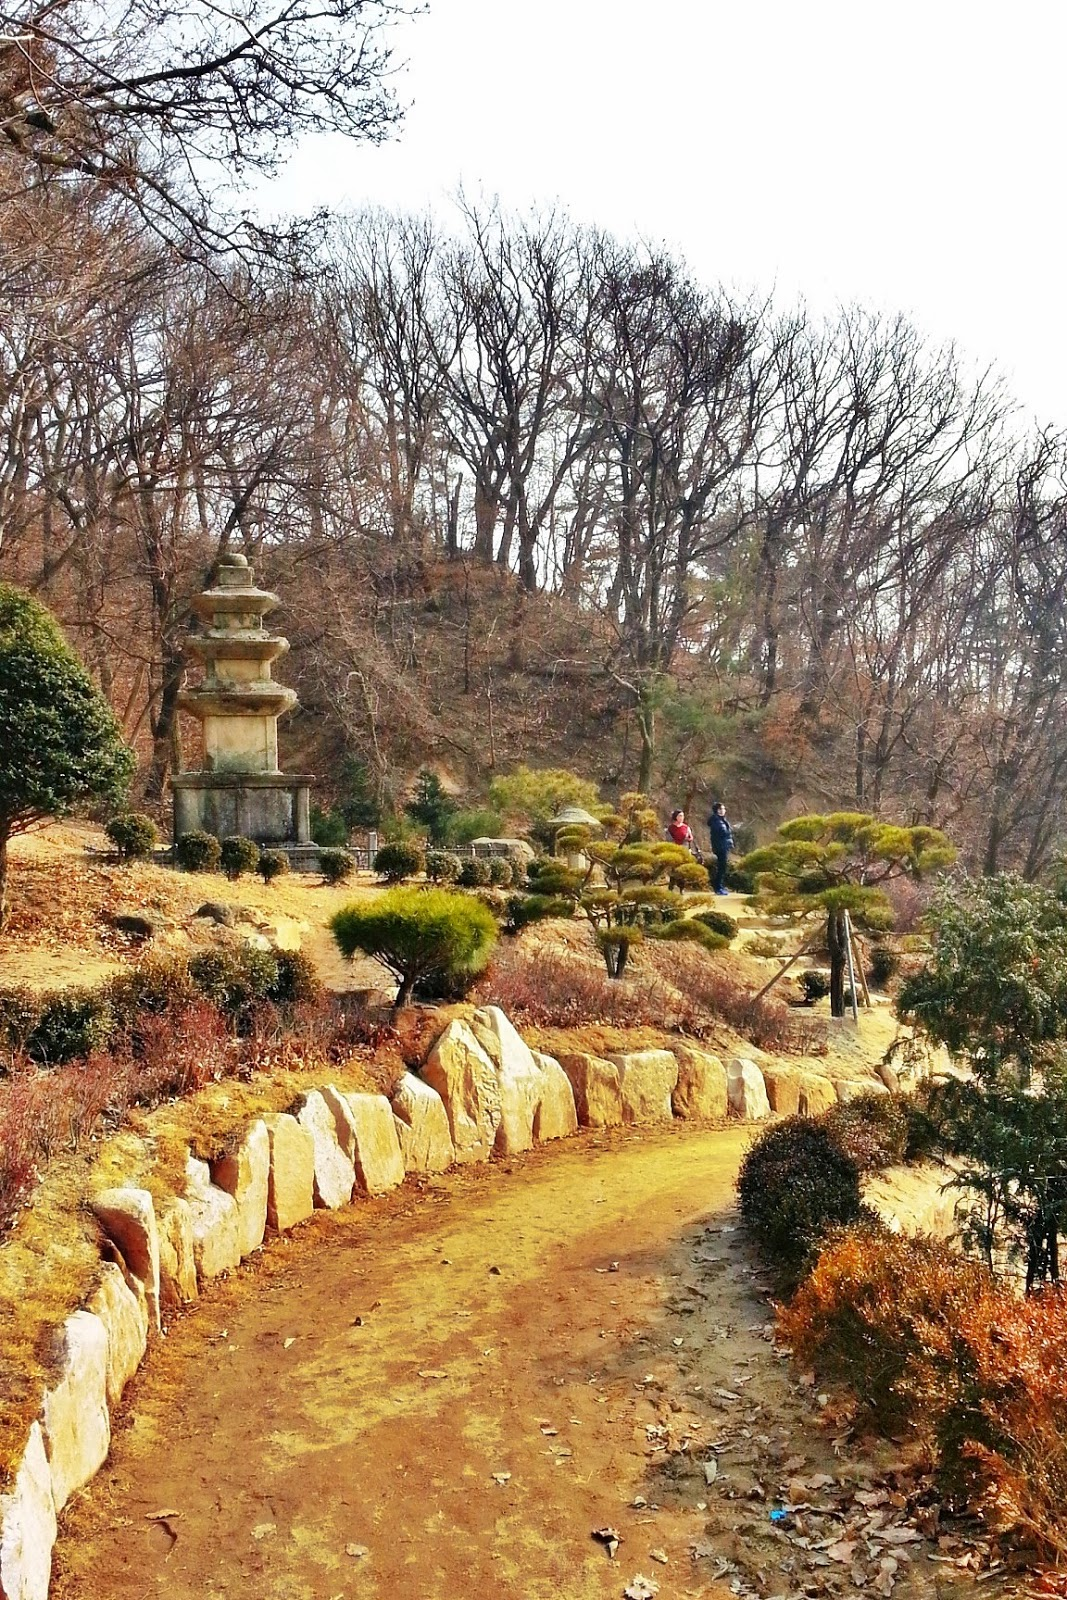 Treasures in Buseoksa Temple 부석사 | meheartseoul.blogspot.com